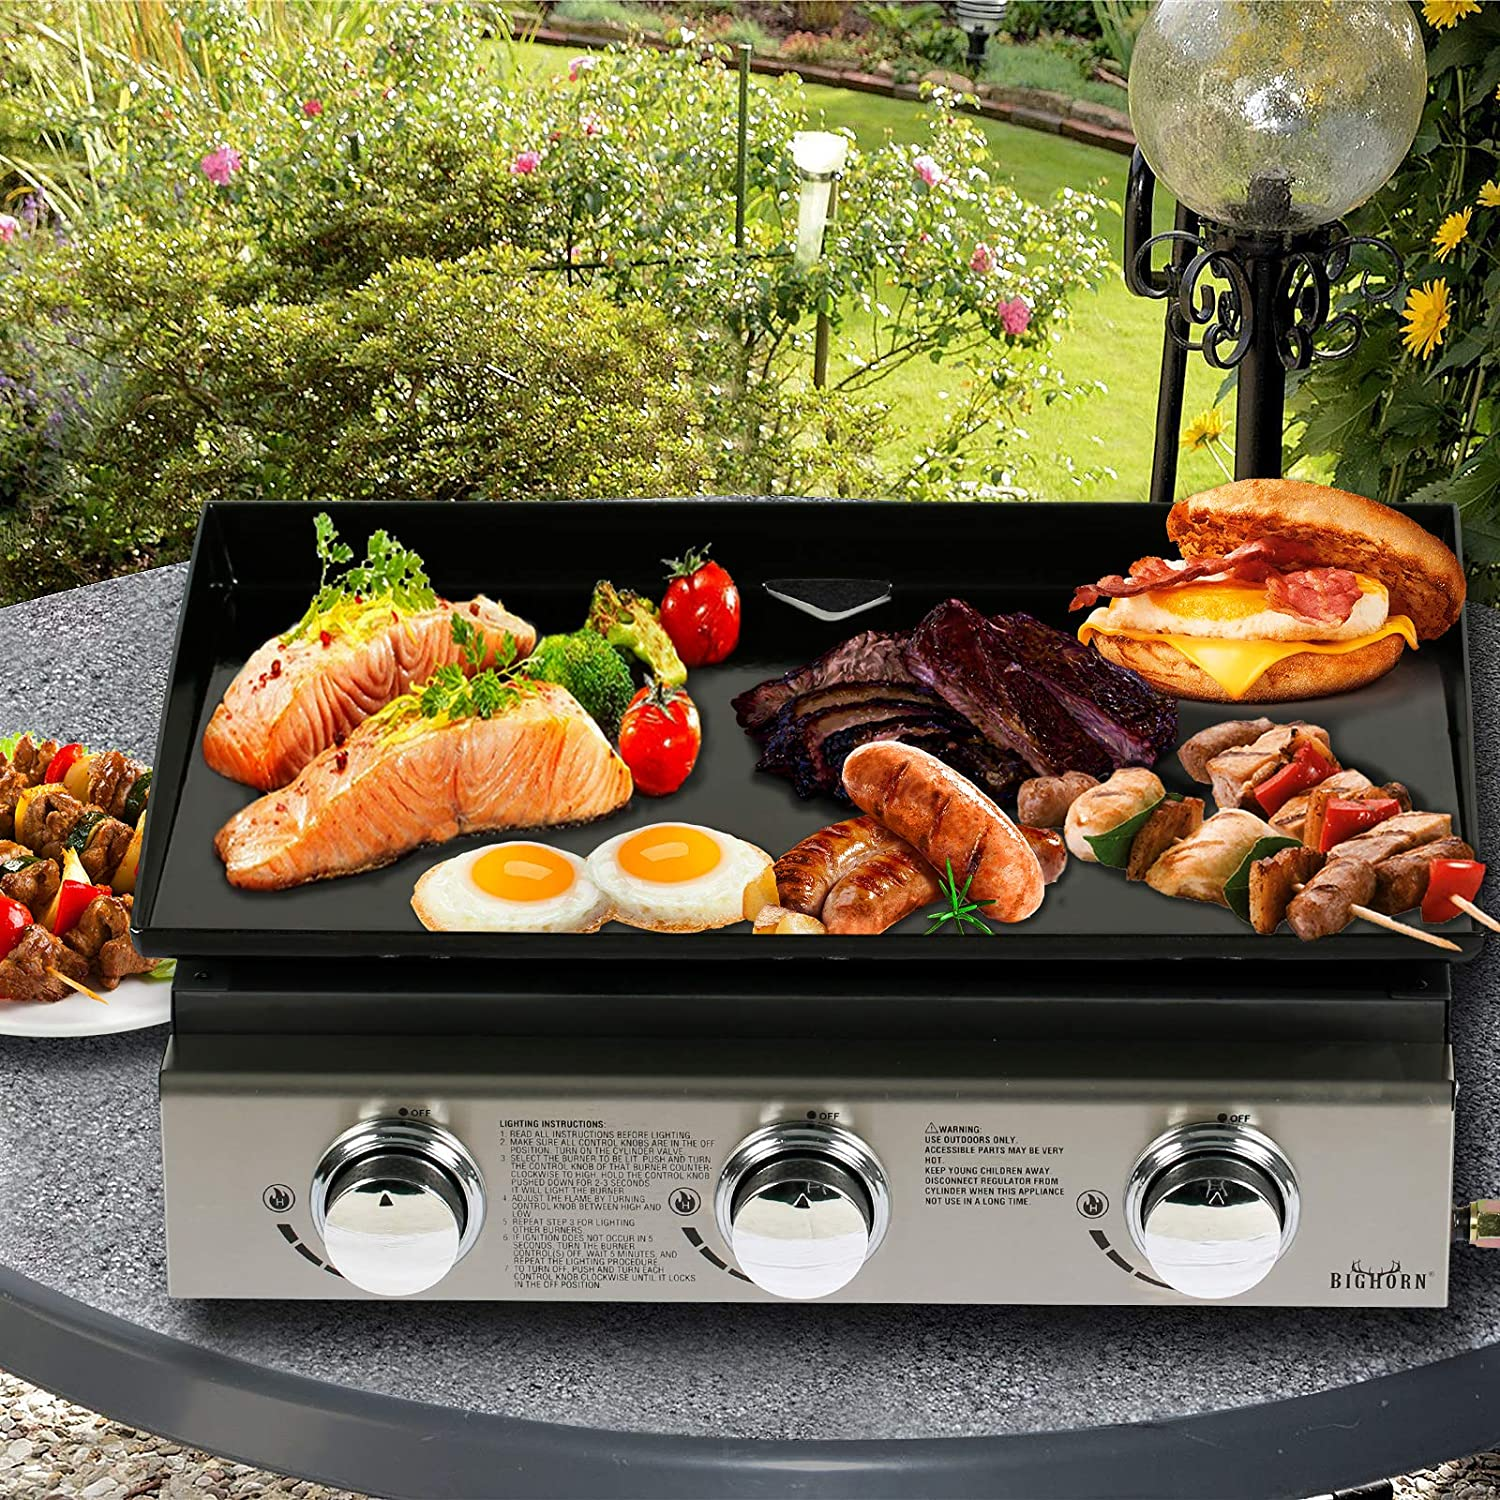 BIG HORN OUTDOOR Steak Grill Propane Gas Grills 1500 /°F Heating Portable Stainless Steel BBQ with 19,000 BTU Infrared Burner Tabletop Cooking grill for Garden Patio Commercial Industrial Kitchen